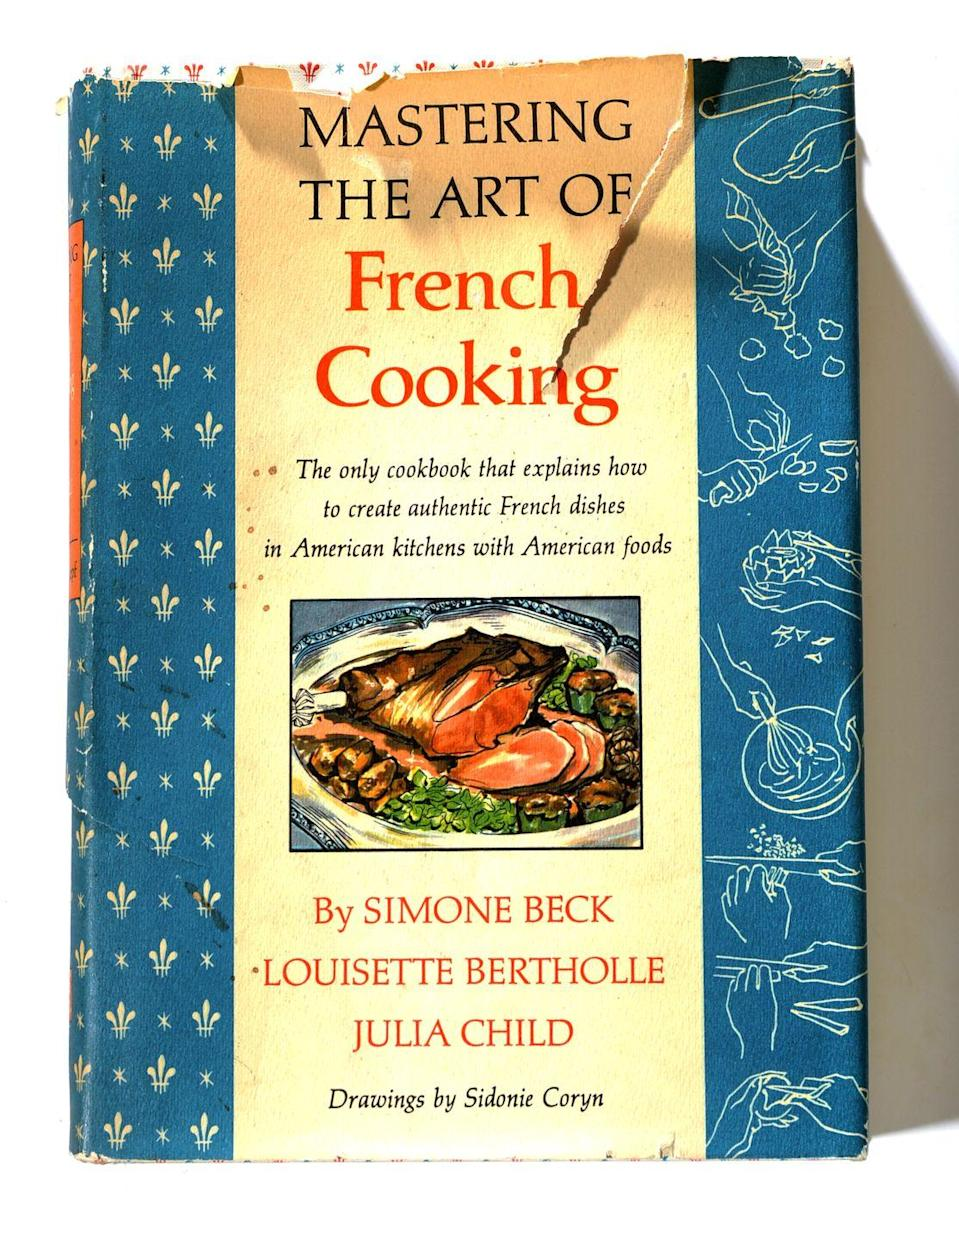 """<p>Julia Child is one of America's favorite chefs, and her first cookbook swept the nation when it was published in 1961. If you've hung onto an original copy, you may be in the market for more than just a satisfied appetite—a first edition in good condition with the original jacket is rare and <a href=""""https://www.abebooks.com/servlet/BookDetailsPL?bi=22832468638&cm_mmc=ggl-_-COM_Shopp_Rare-_-naa-_-naa&gclid=CjwKCAiAlajvBRB_EiwA4vAqiBNzX4ozcC2MVlT-NdFVw9_y8LJtWROjgOhXMq6bp2pOC79RbduiDBoCYqUQAvD_BwE"""" rel=""""nofollow noopener"""" target=""""_blank"""" data-ylk=""""slk:earns top dollar"""" class=""""link rapid-noclick-resp"""">earns top dollar</a> on Ebay. </p><p><strong>What it's worth: </strong>$2,000 and up</p>"""